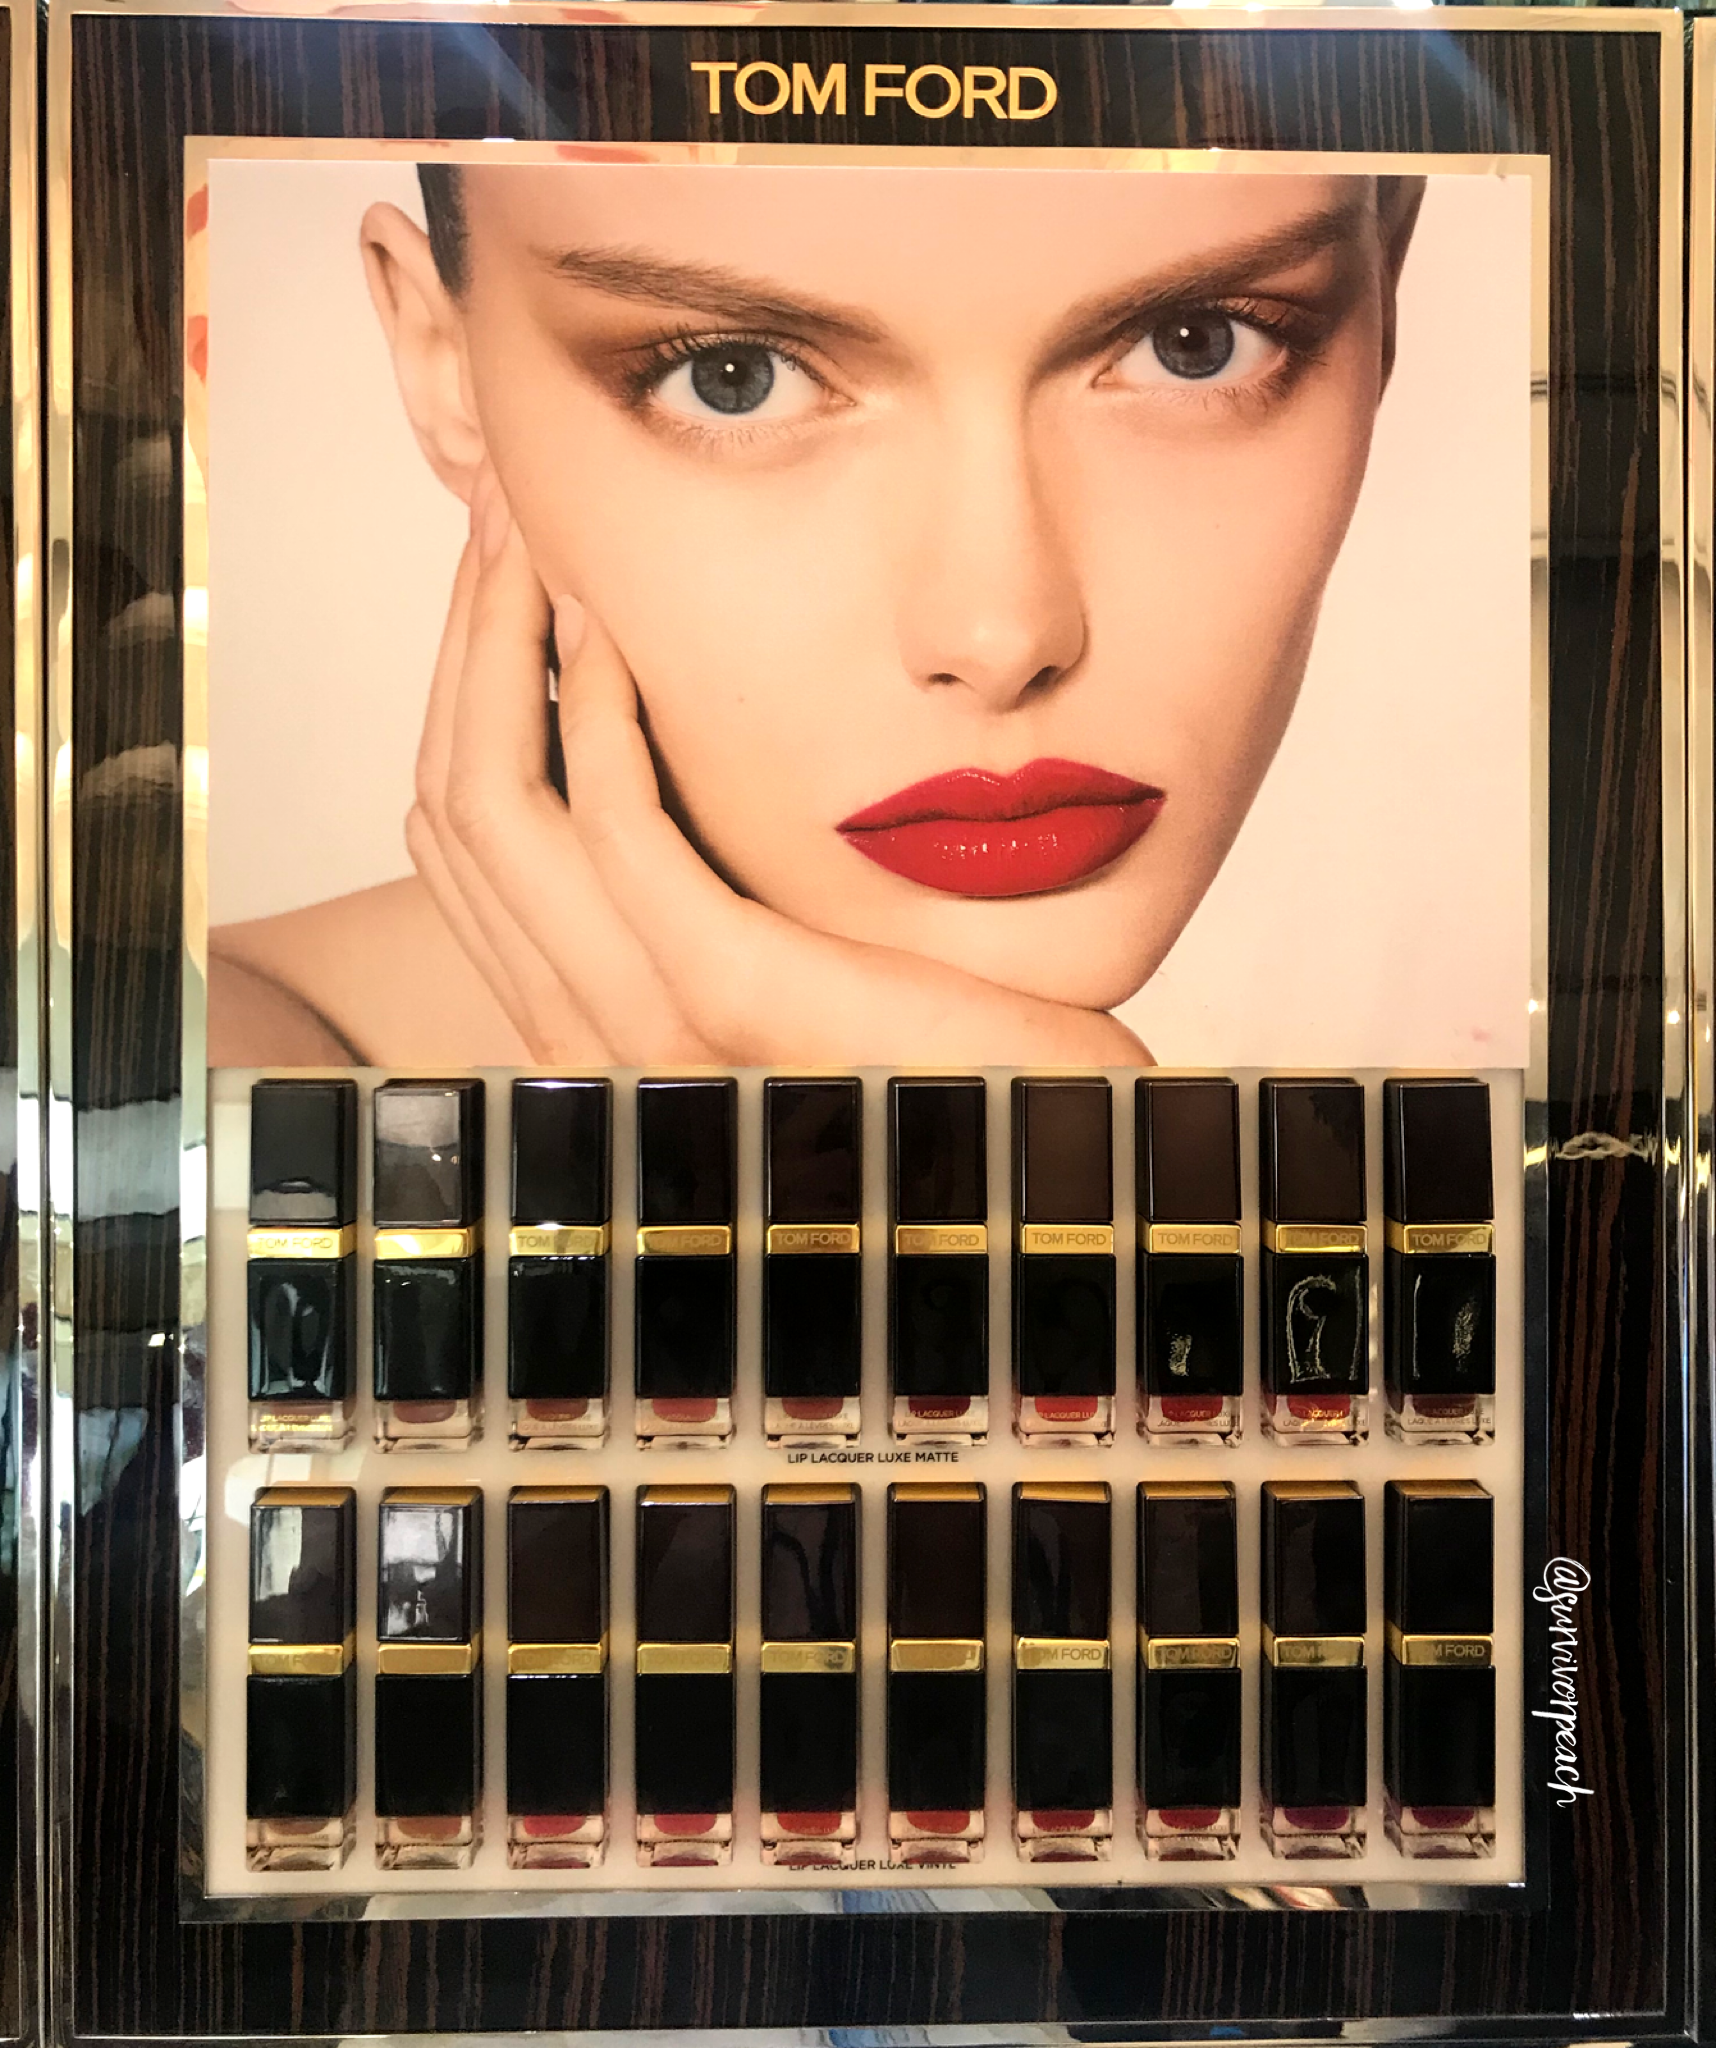 Tomford Lip Lacquer Luxe Matte and Lip Luxe Vinyl